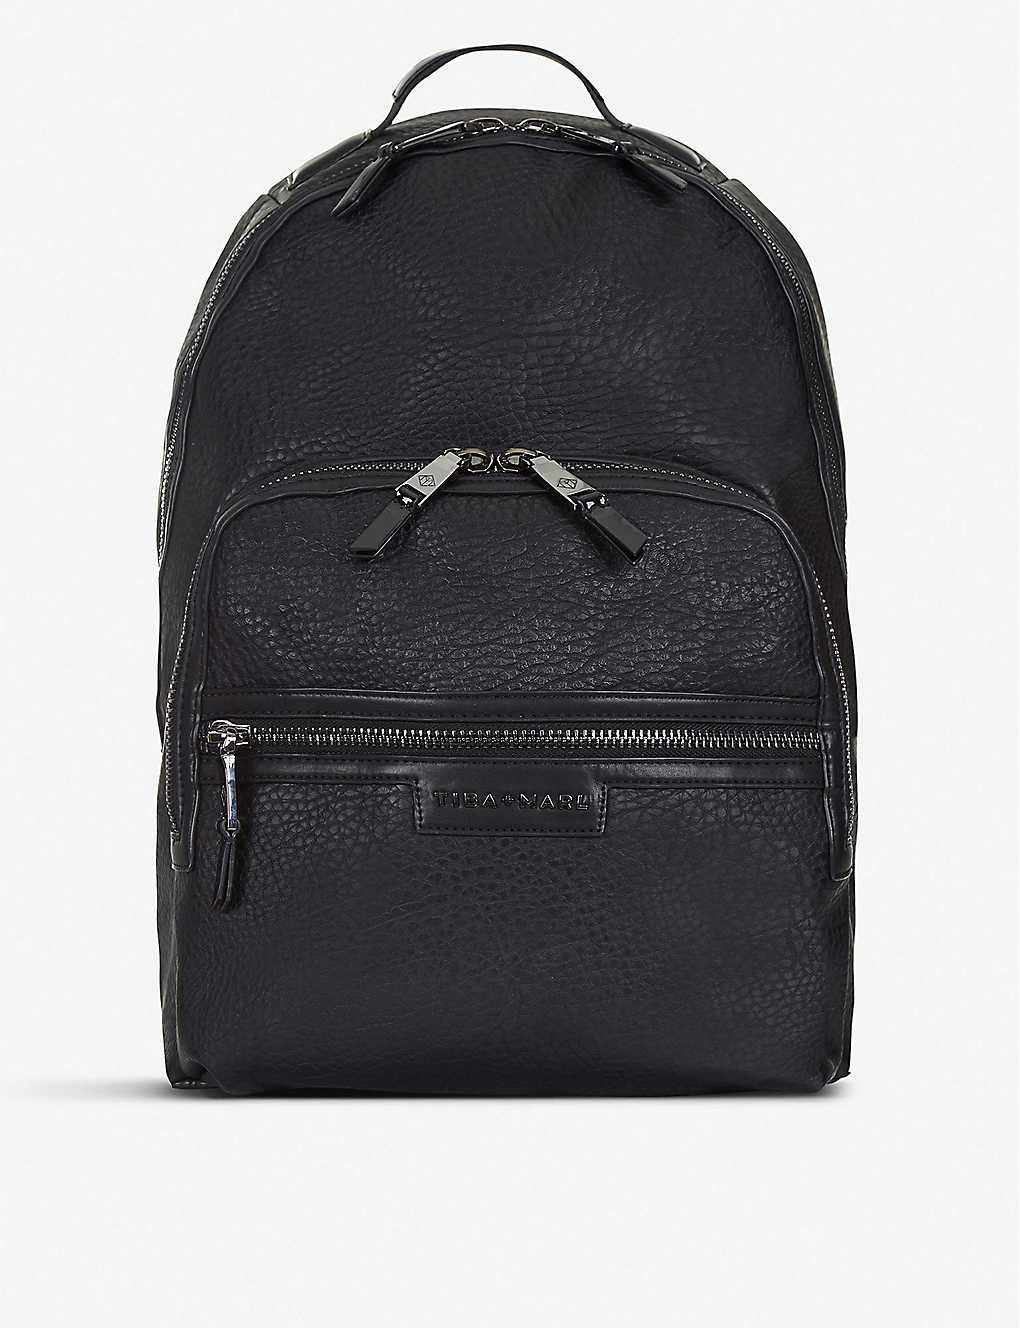 moncler black changing bag